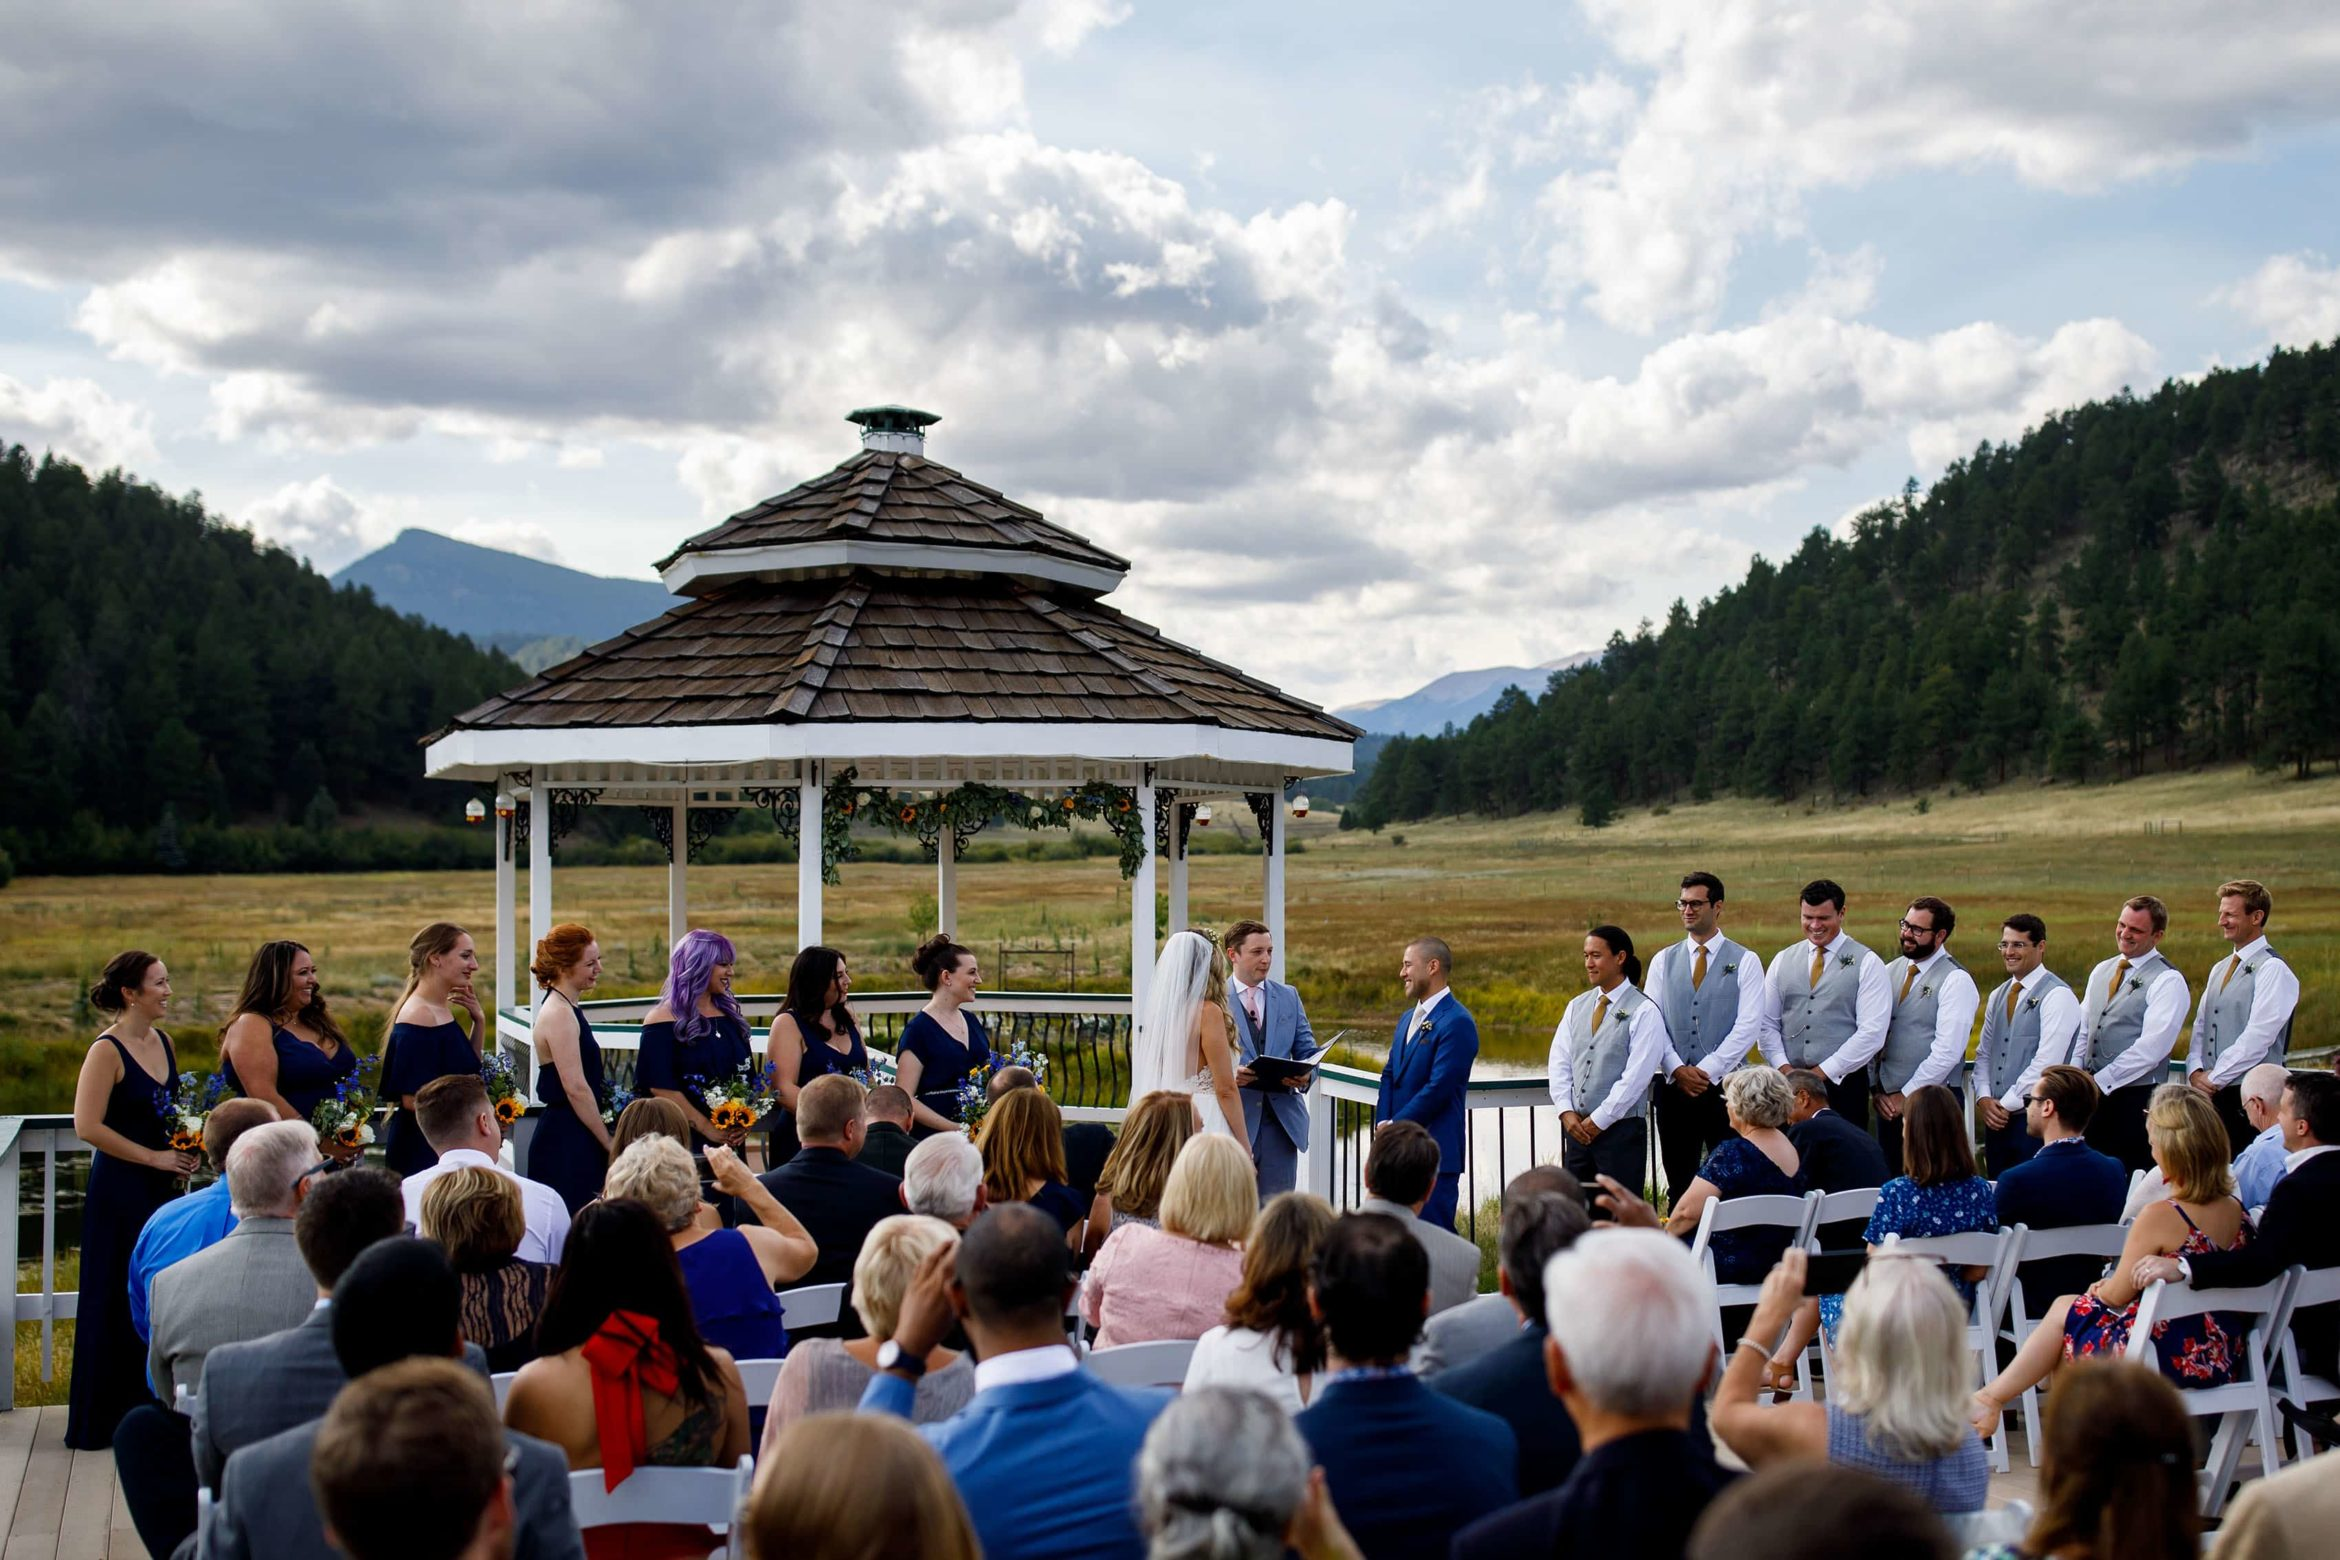 The ceremony takes place at the gazebo during a summer wedding at Deer Creek Valley Ranch